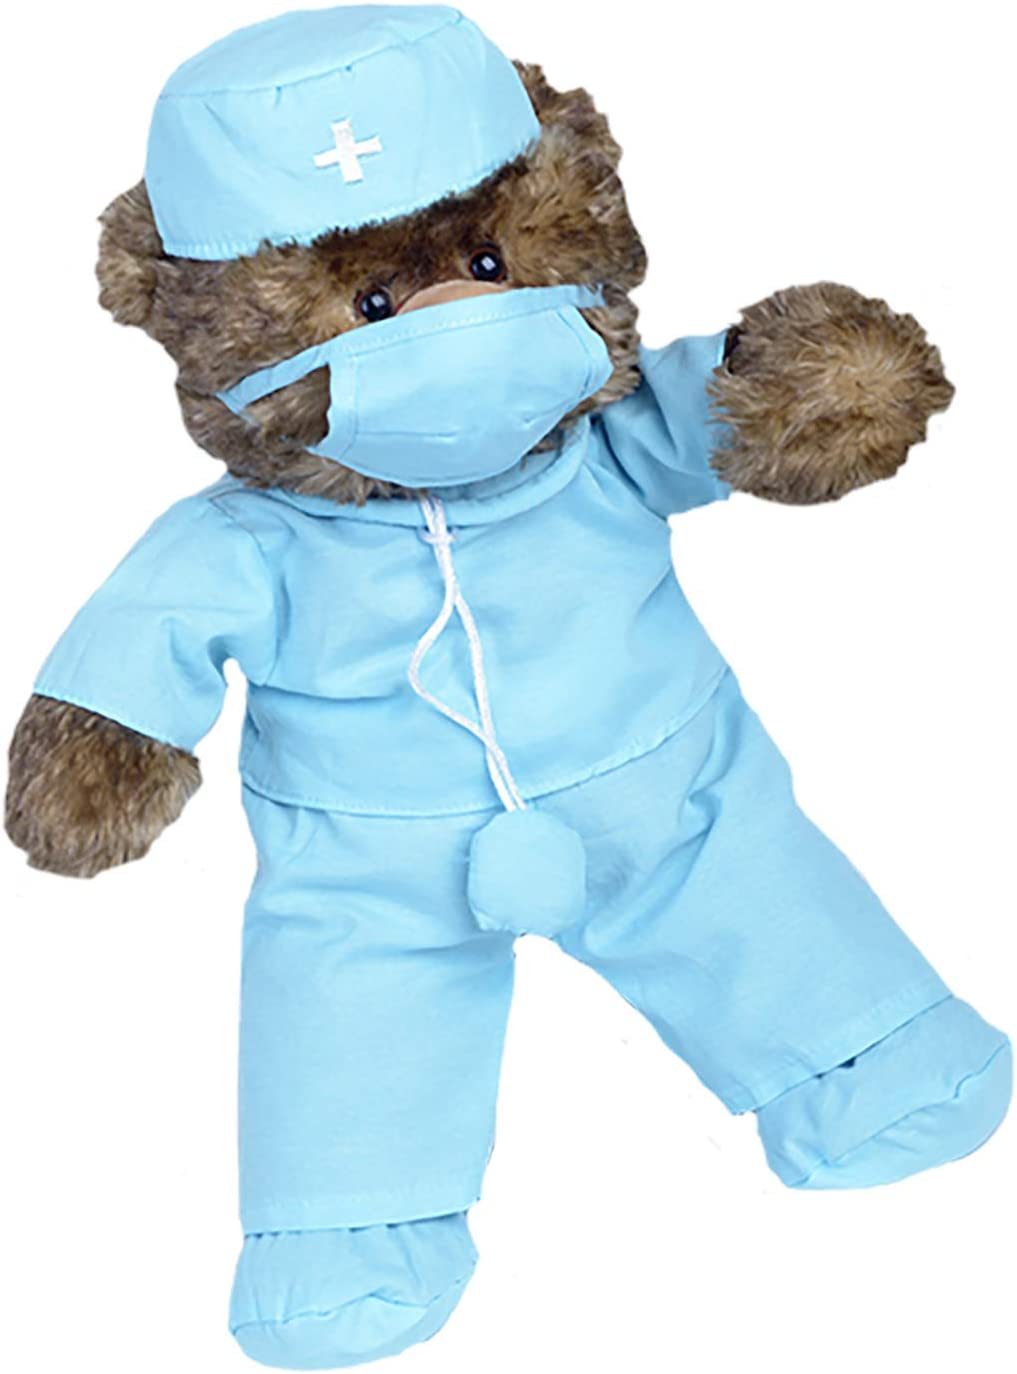 """B003GQWWL0 Doctor \""""Scrubs\"""" Outfit Teddy Bear Clothes Fits Most 14\"""" - 18\"""" Build-A-Bear and Make Your Own Stuffed Animals 61AQPYMBcpL"""